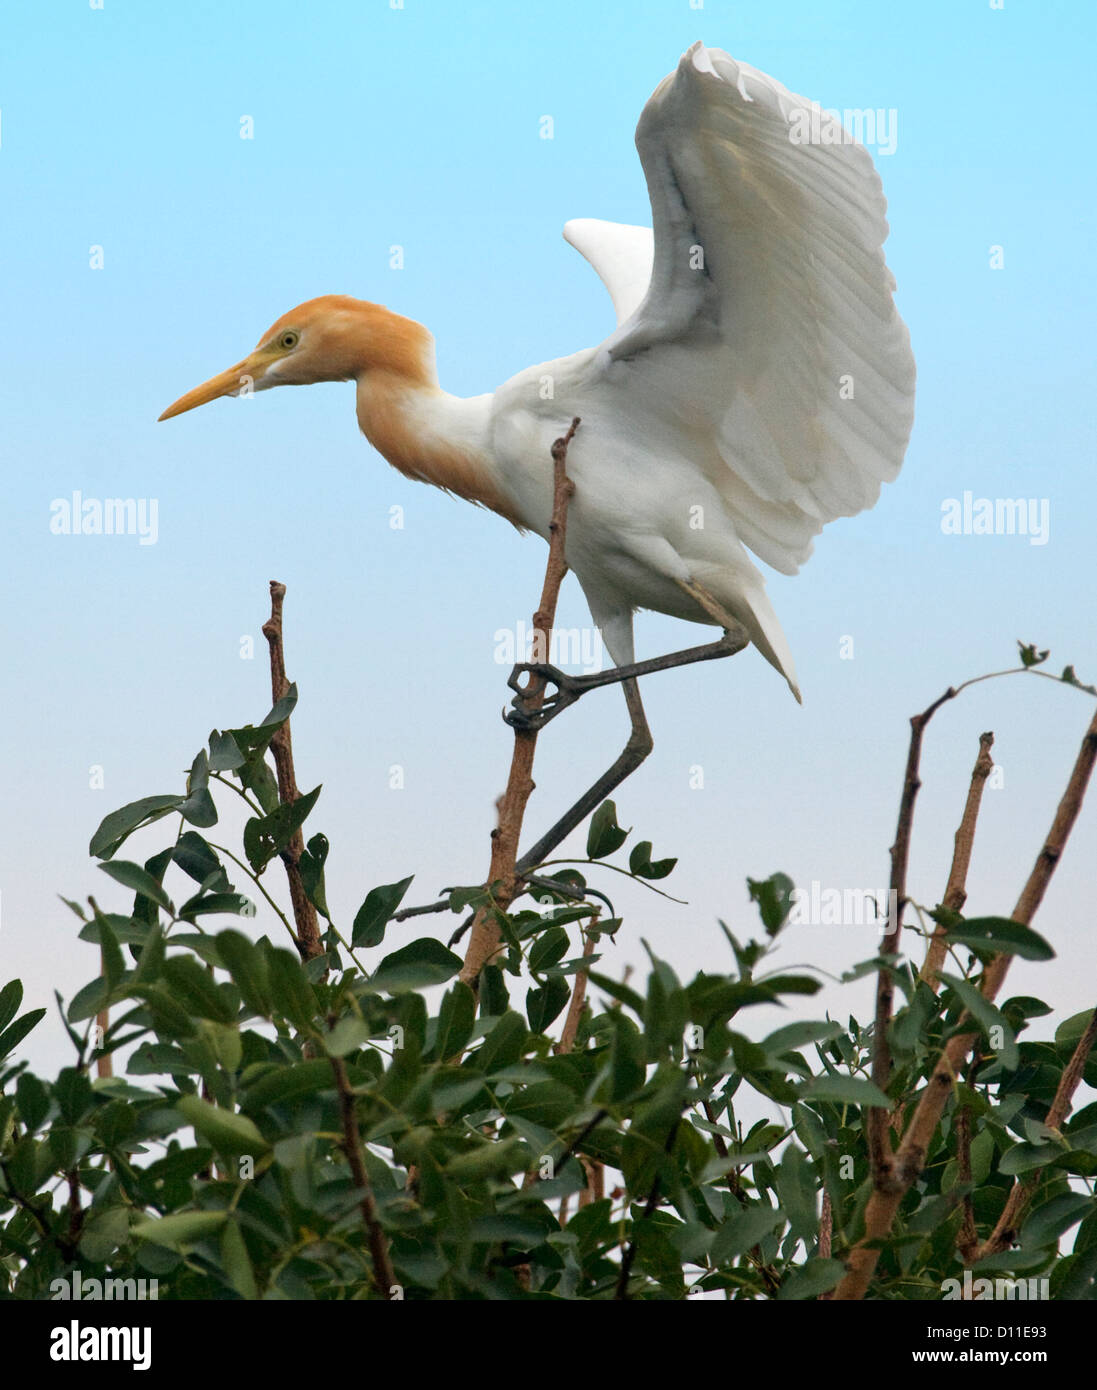 Cattle egret - Bubulcus ibis -  in breeding plumage with wings outstretched against a blue sky as it takes to the - Stock Image